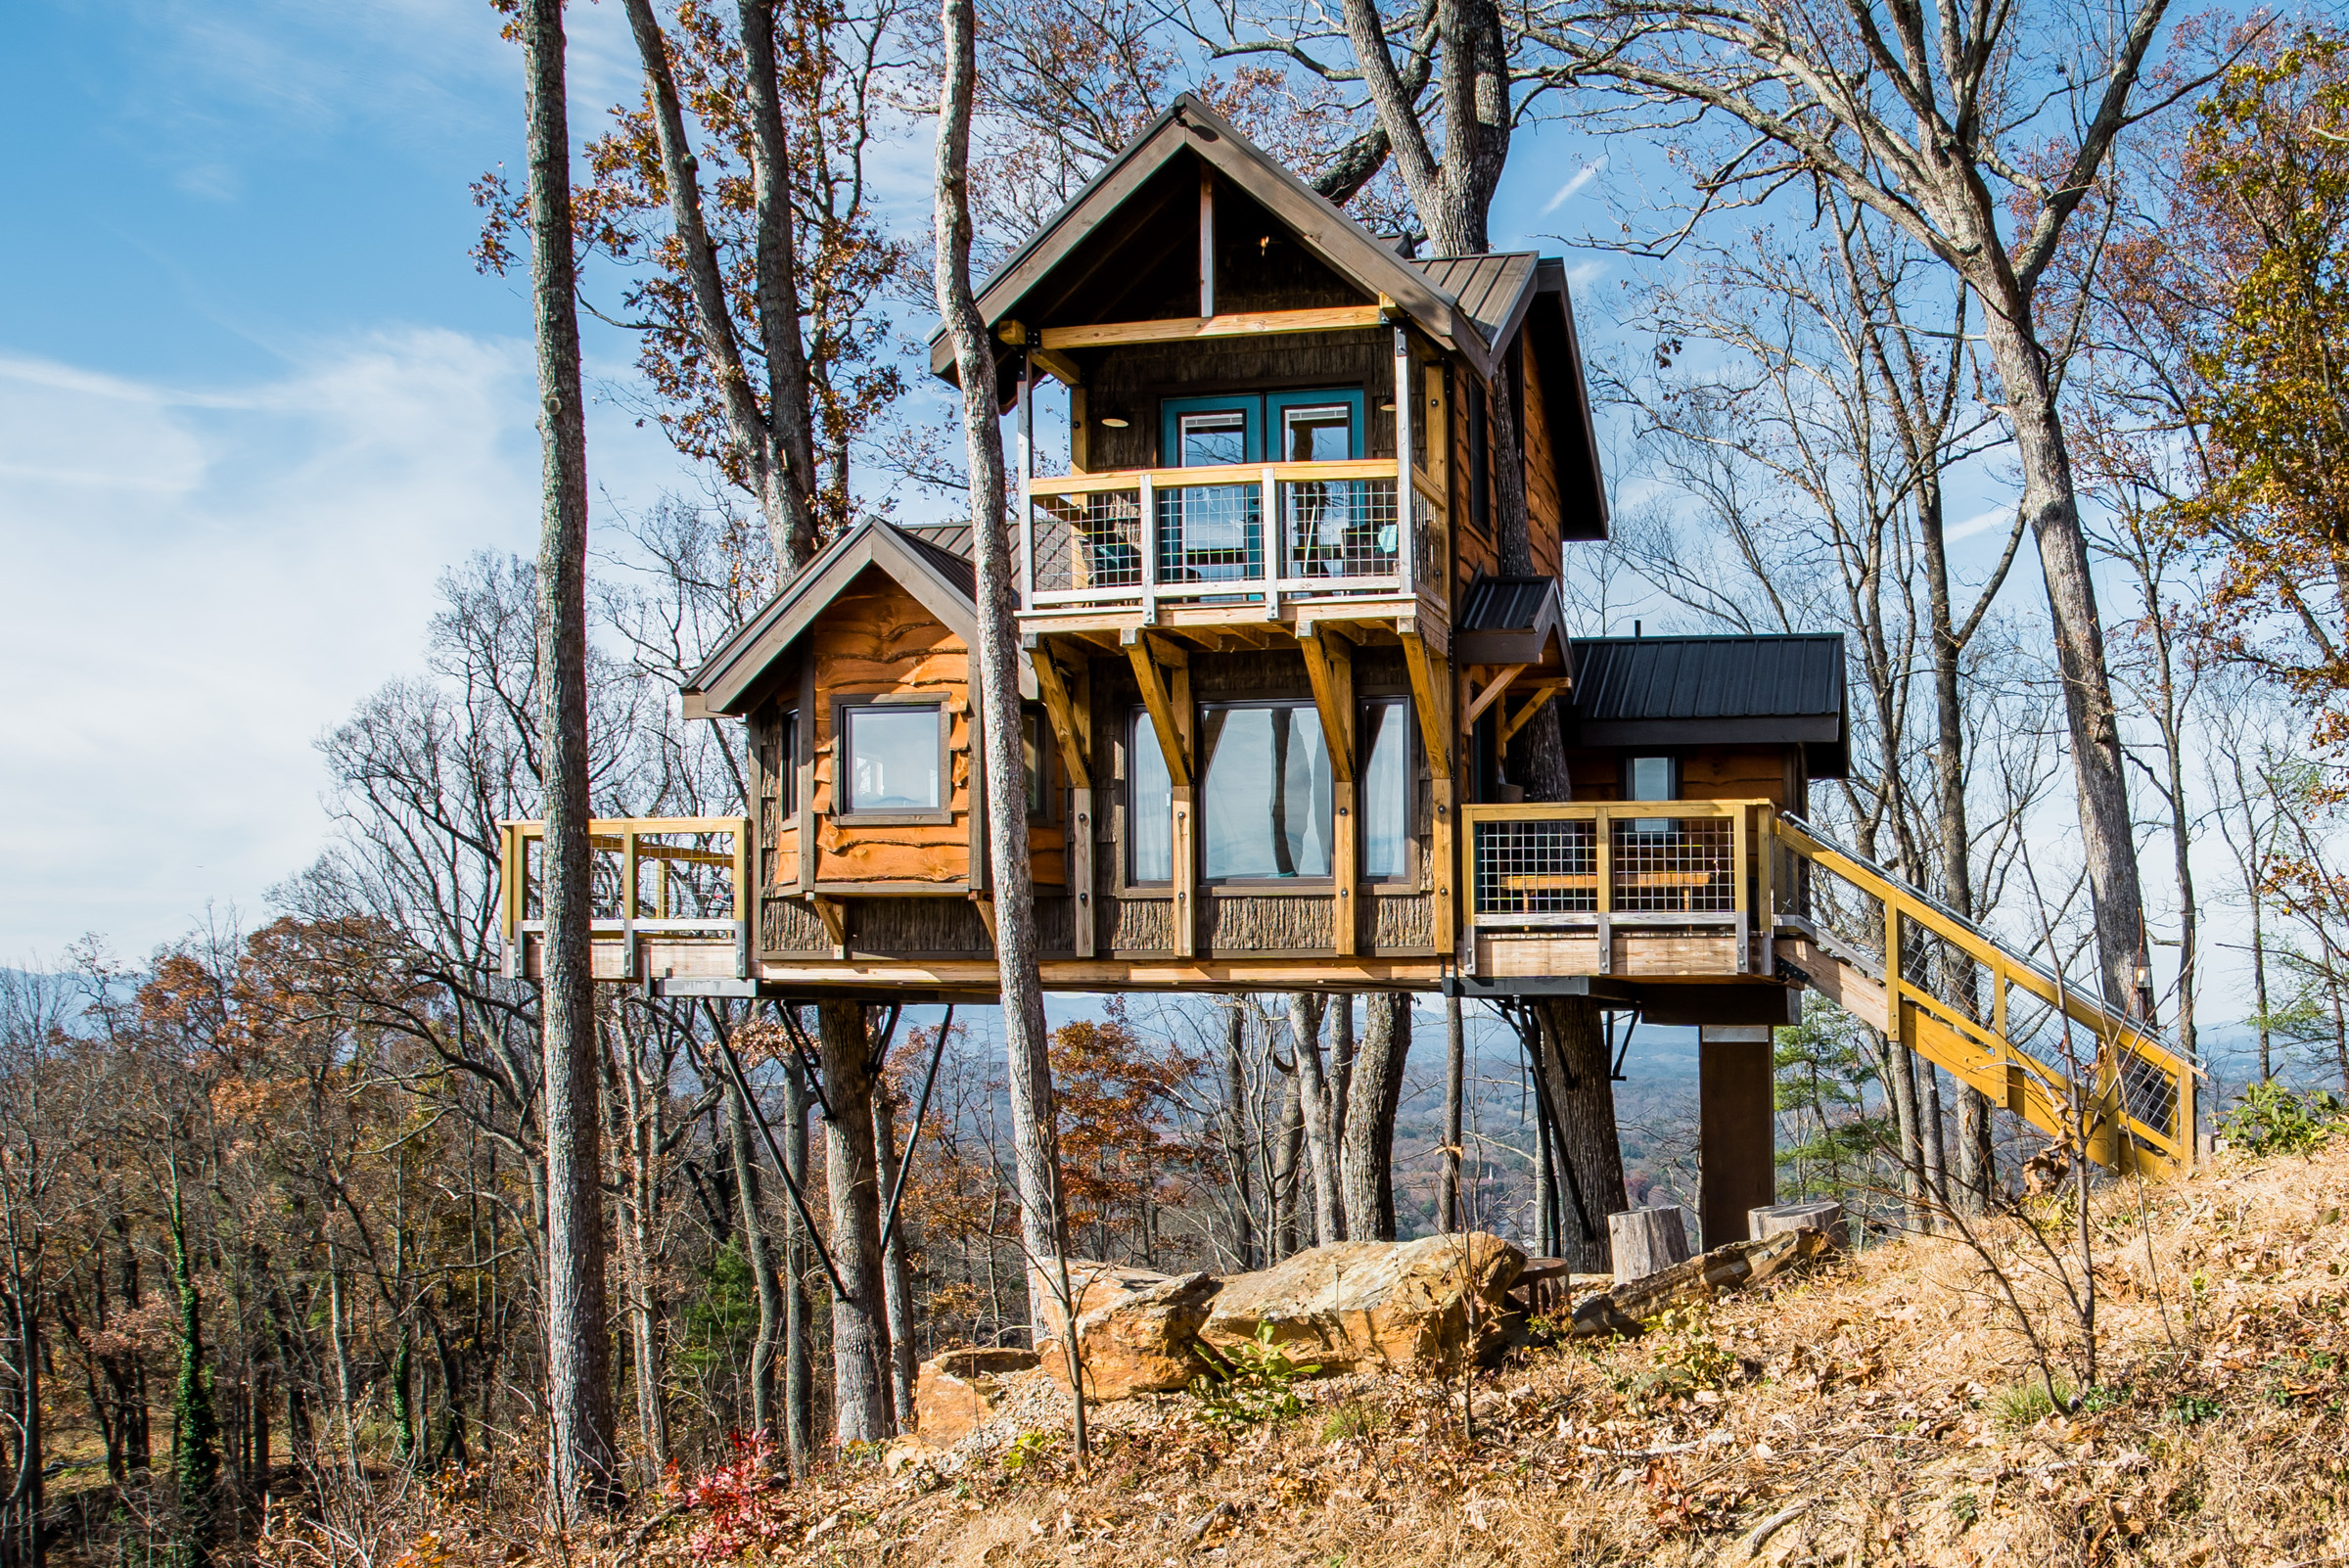 Modern treehouse with three wings elevated amongst bare trees on a hillside.